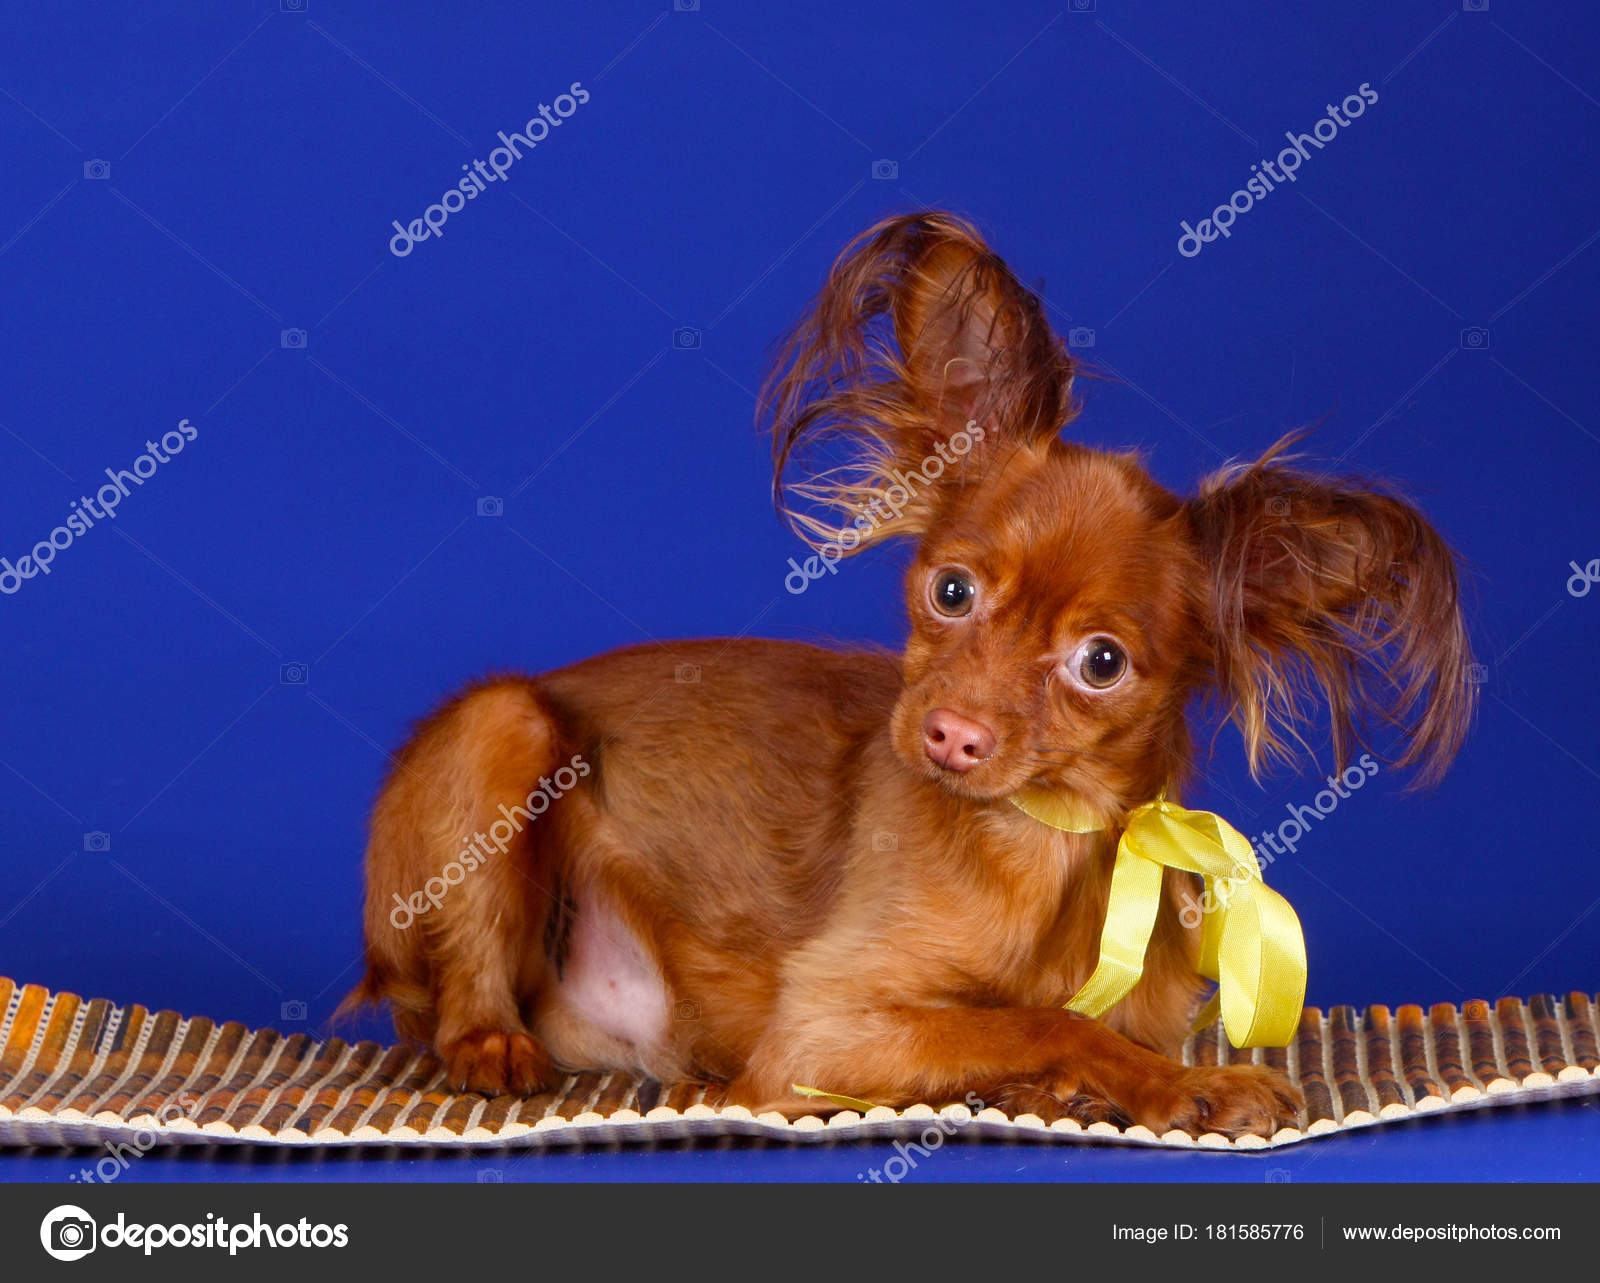 Top Puppies Bow Adorable Dog - depositphotos_181585776-stock-photo-portrait-red-haired-puppy-yellow  Snapshot_166640  .jpg